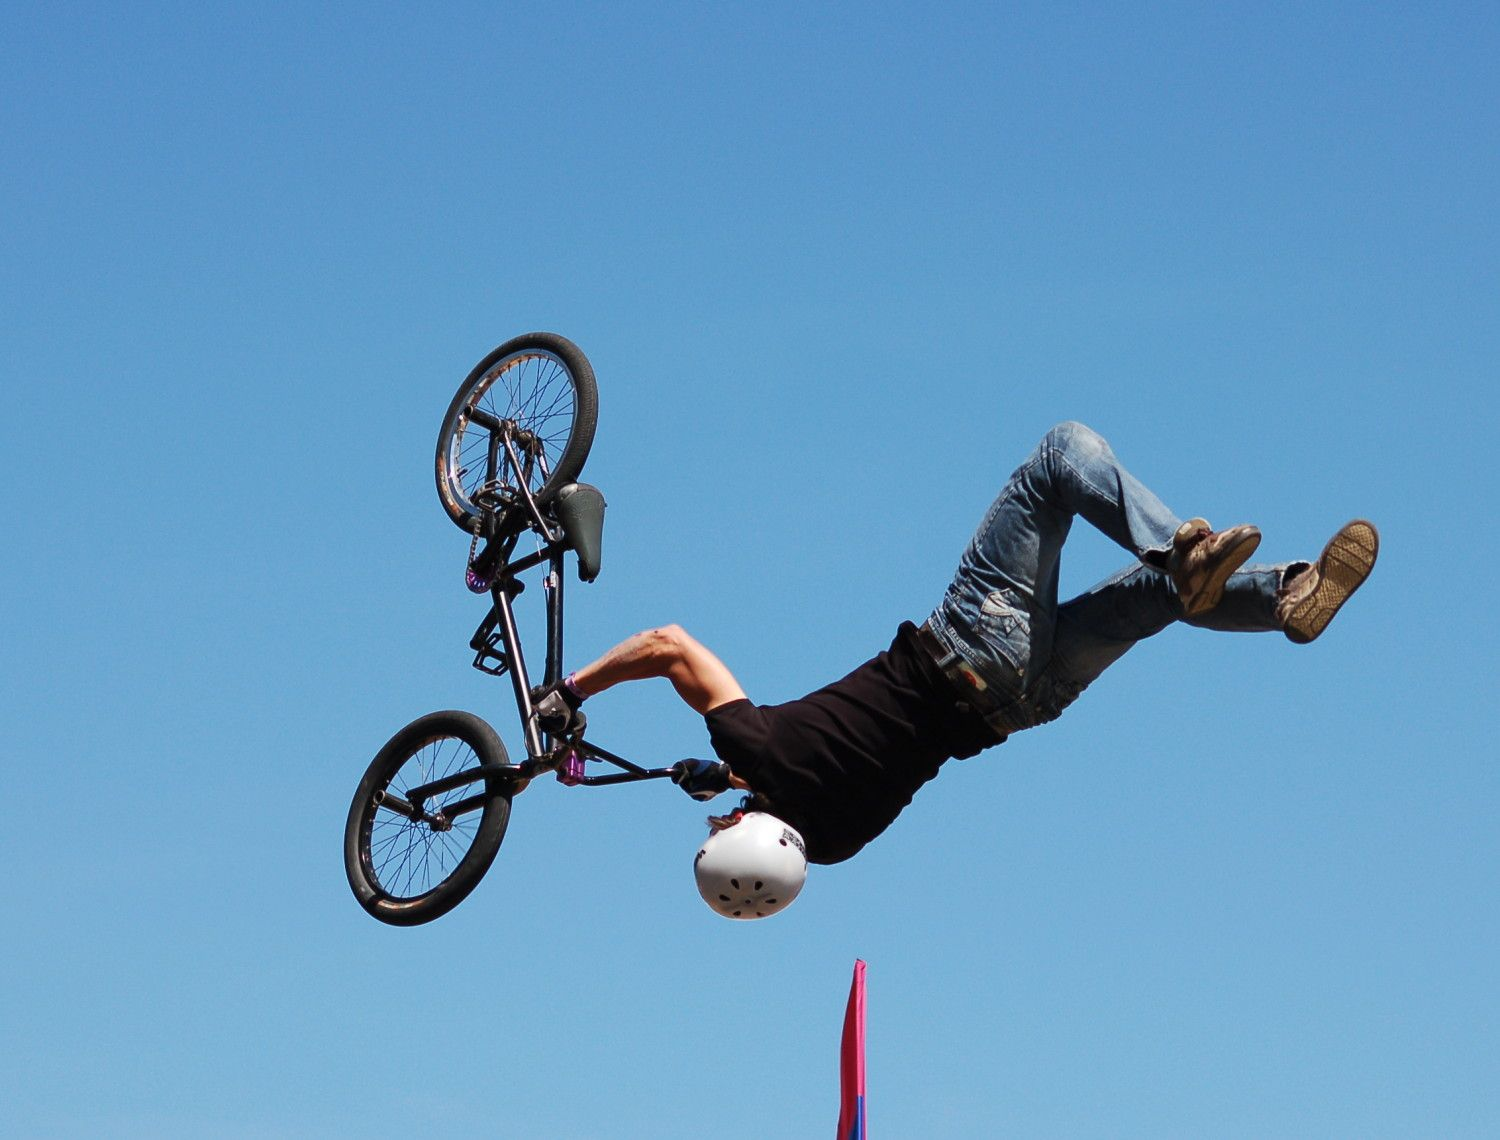 Reading/hobbies, Learn to bmx, I want to learn to BMX when i get older.